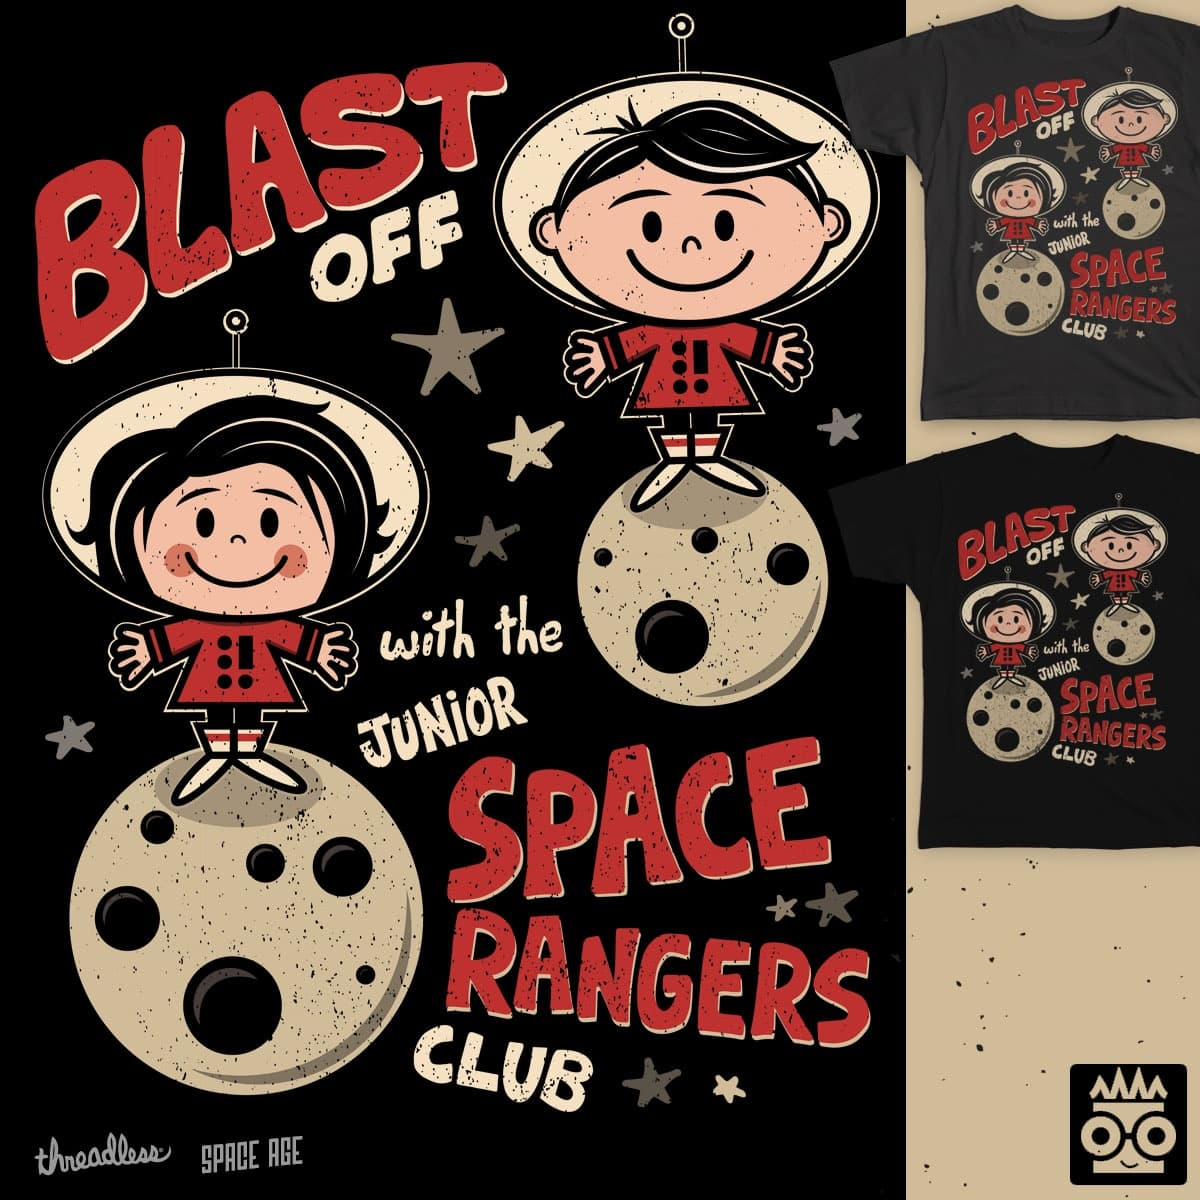 Blast Off with the Space Rangers by treemanjake on Threadless